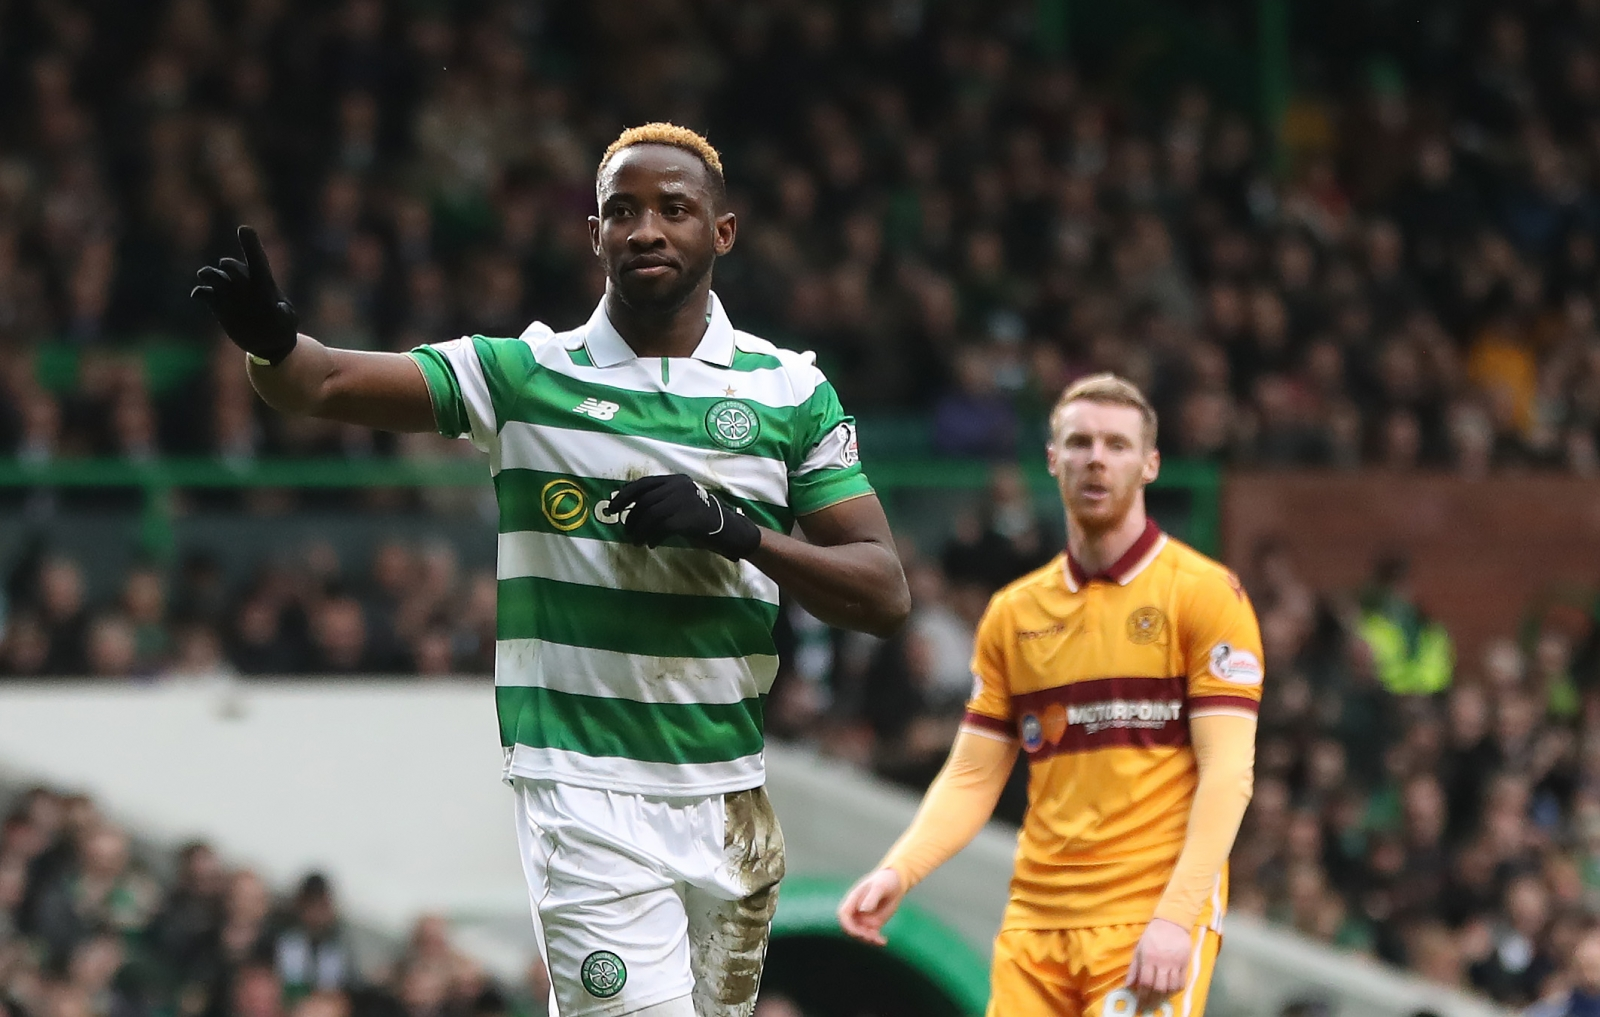 Celtic linked with striker deal, La Liga side involved